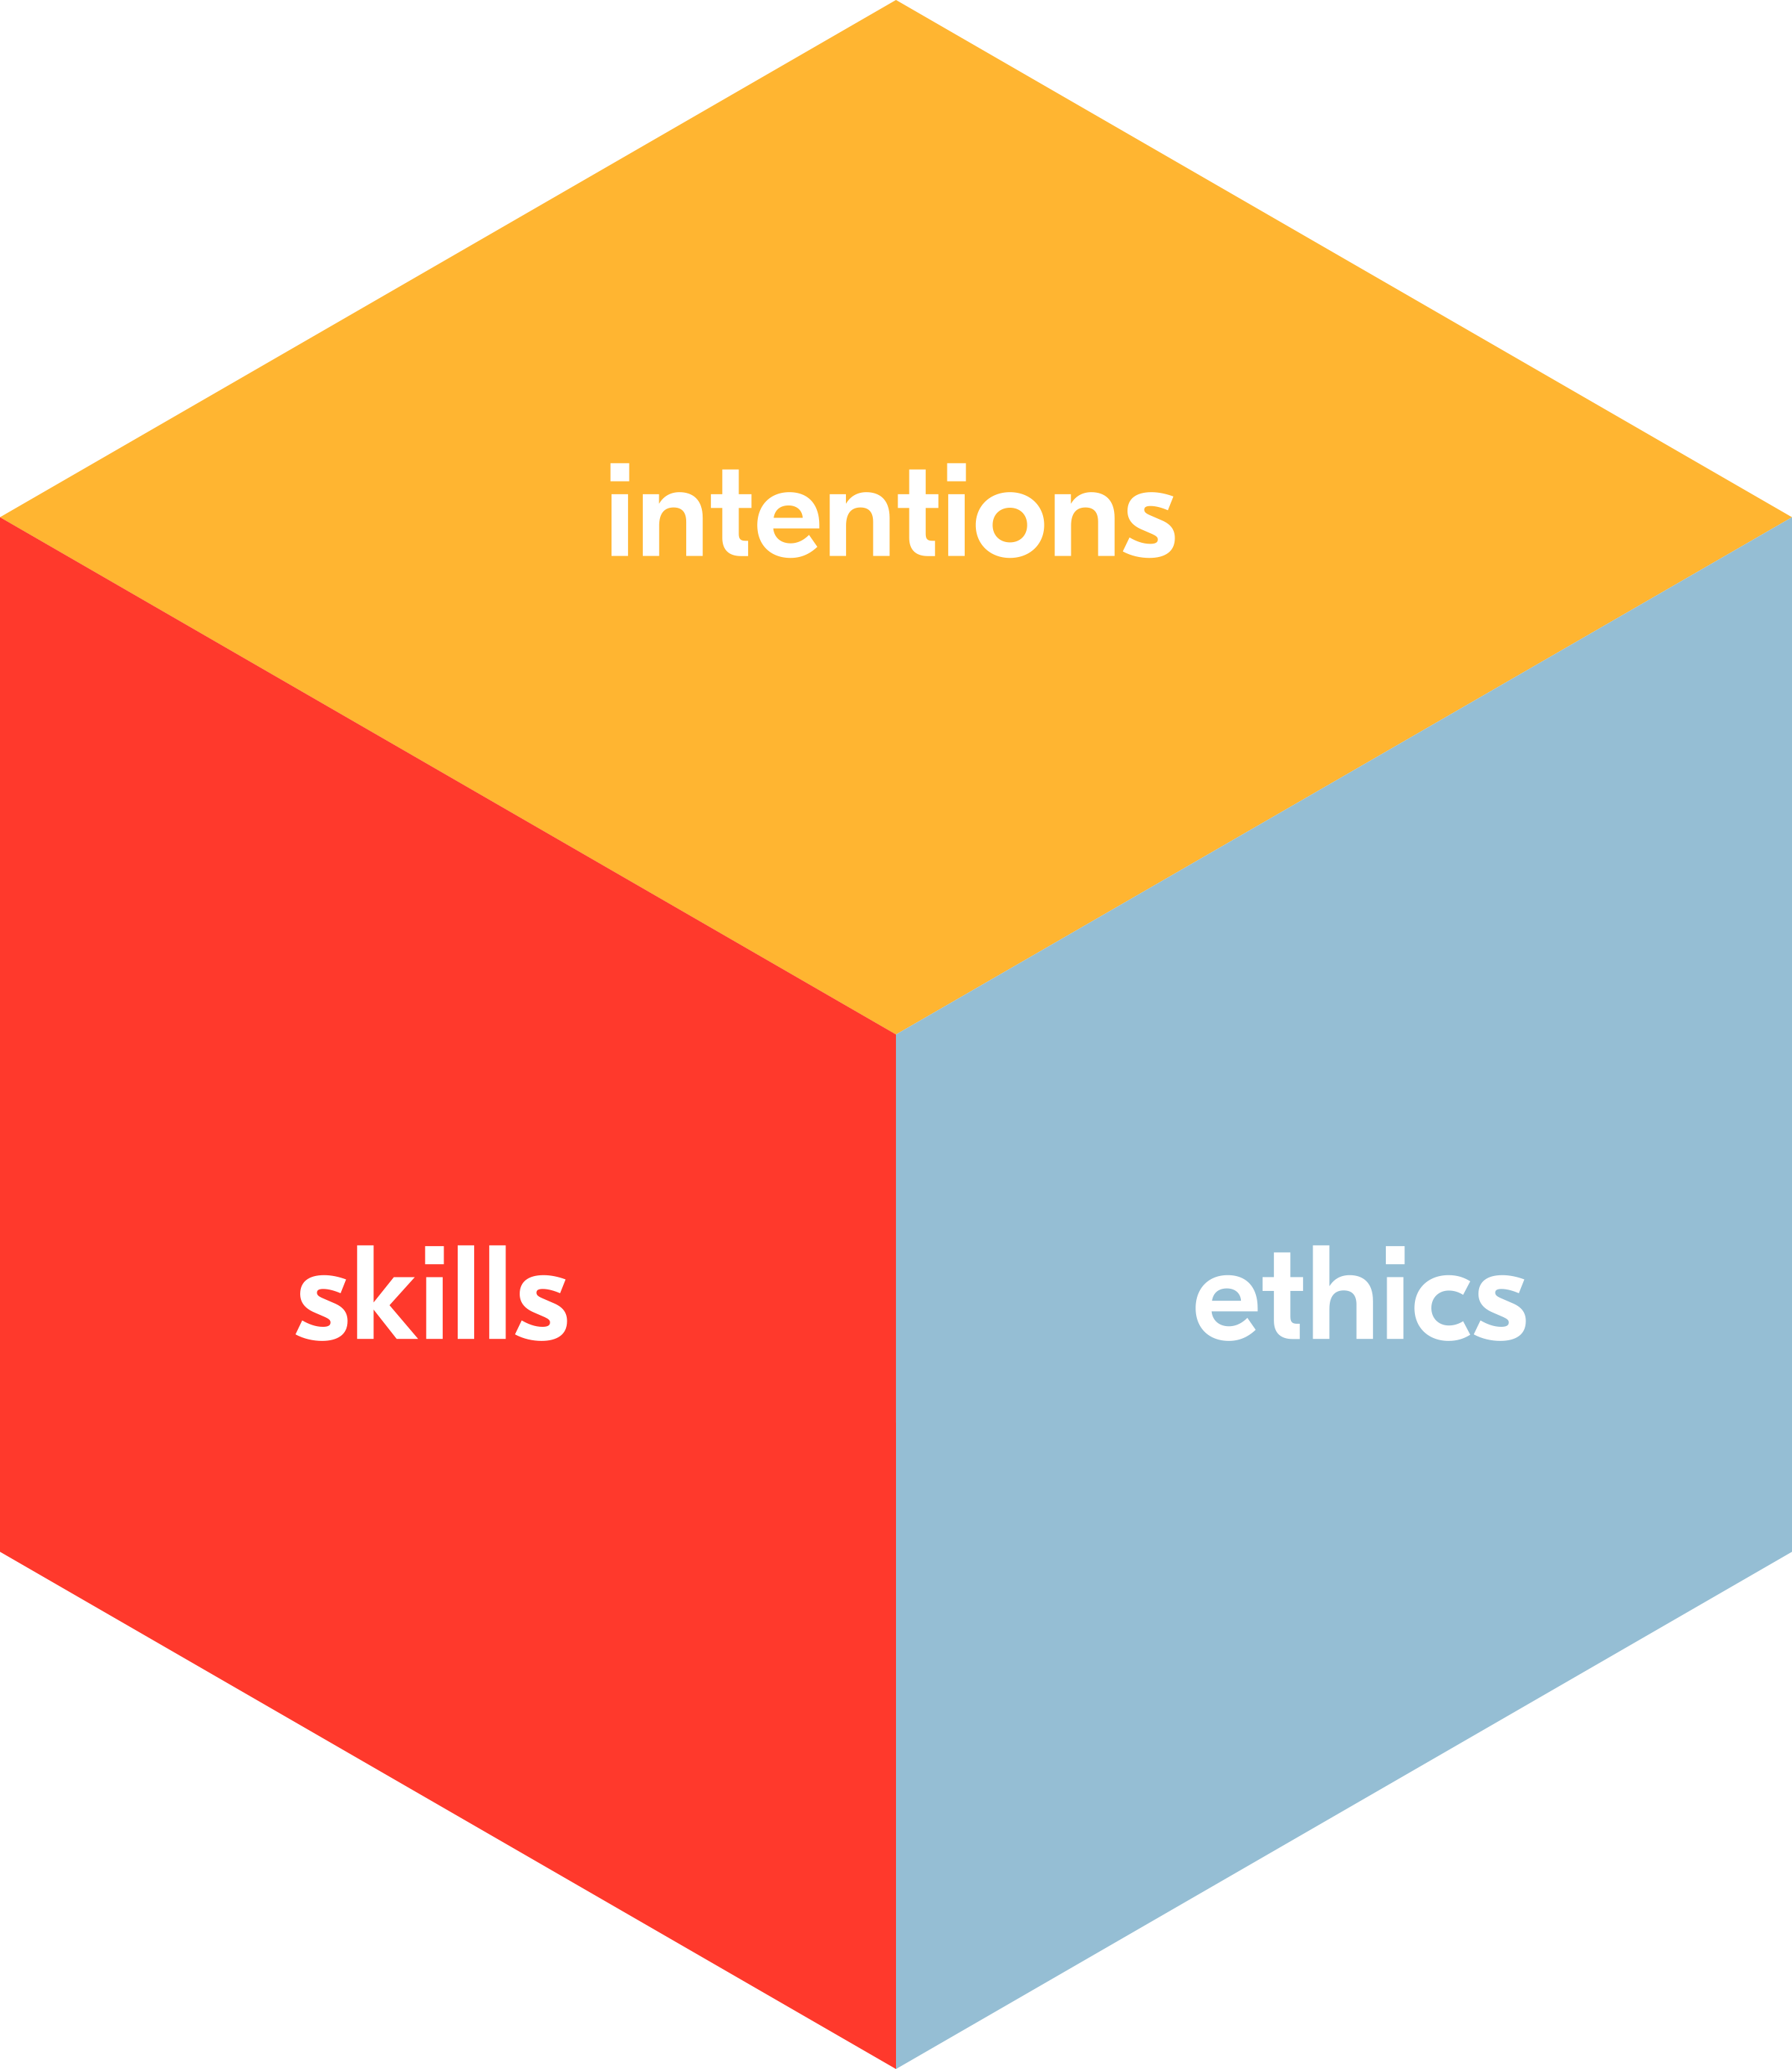 essential elements : intentions, skills, and ethics